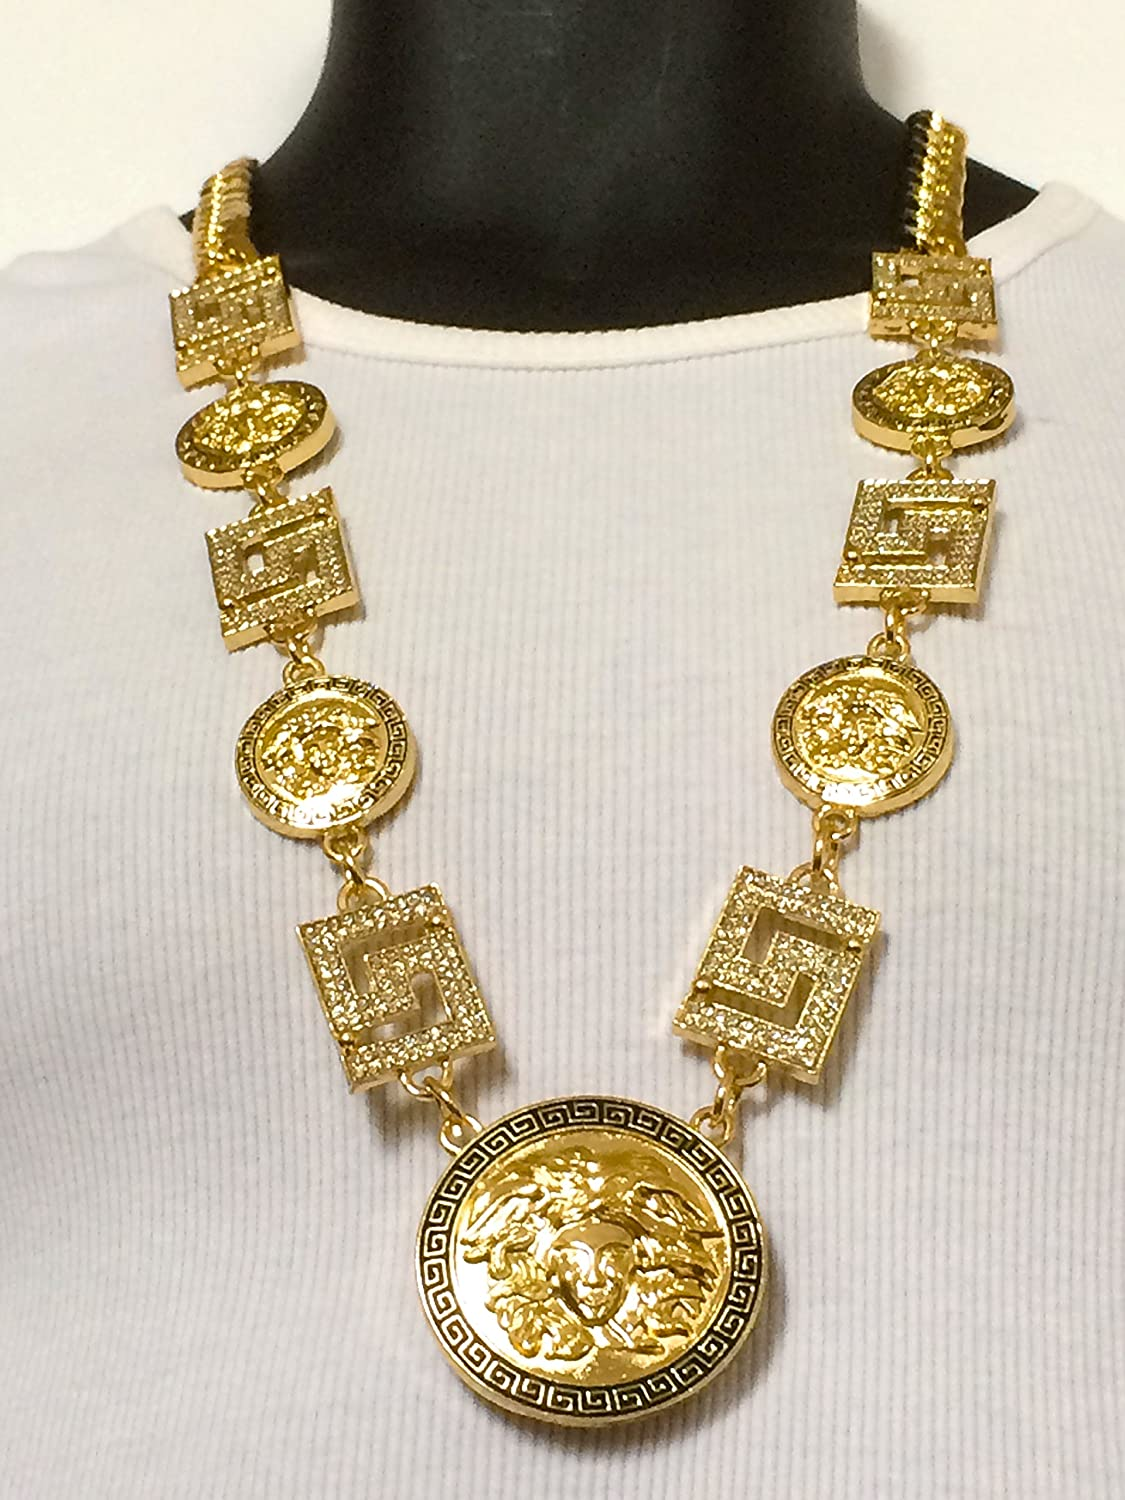 Amazon new mens rapper gold 5 medallion greek god cuban link amazon new mens rapper gold 5 medallion greek god cuban link chain pendant 33 necklace jewelry aloadofball Choice Image